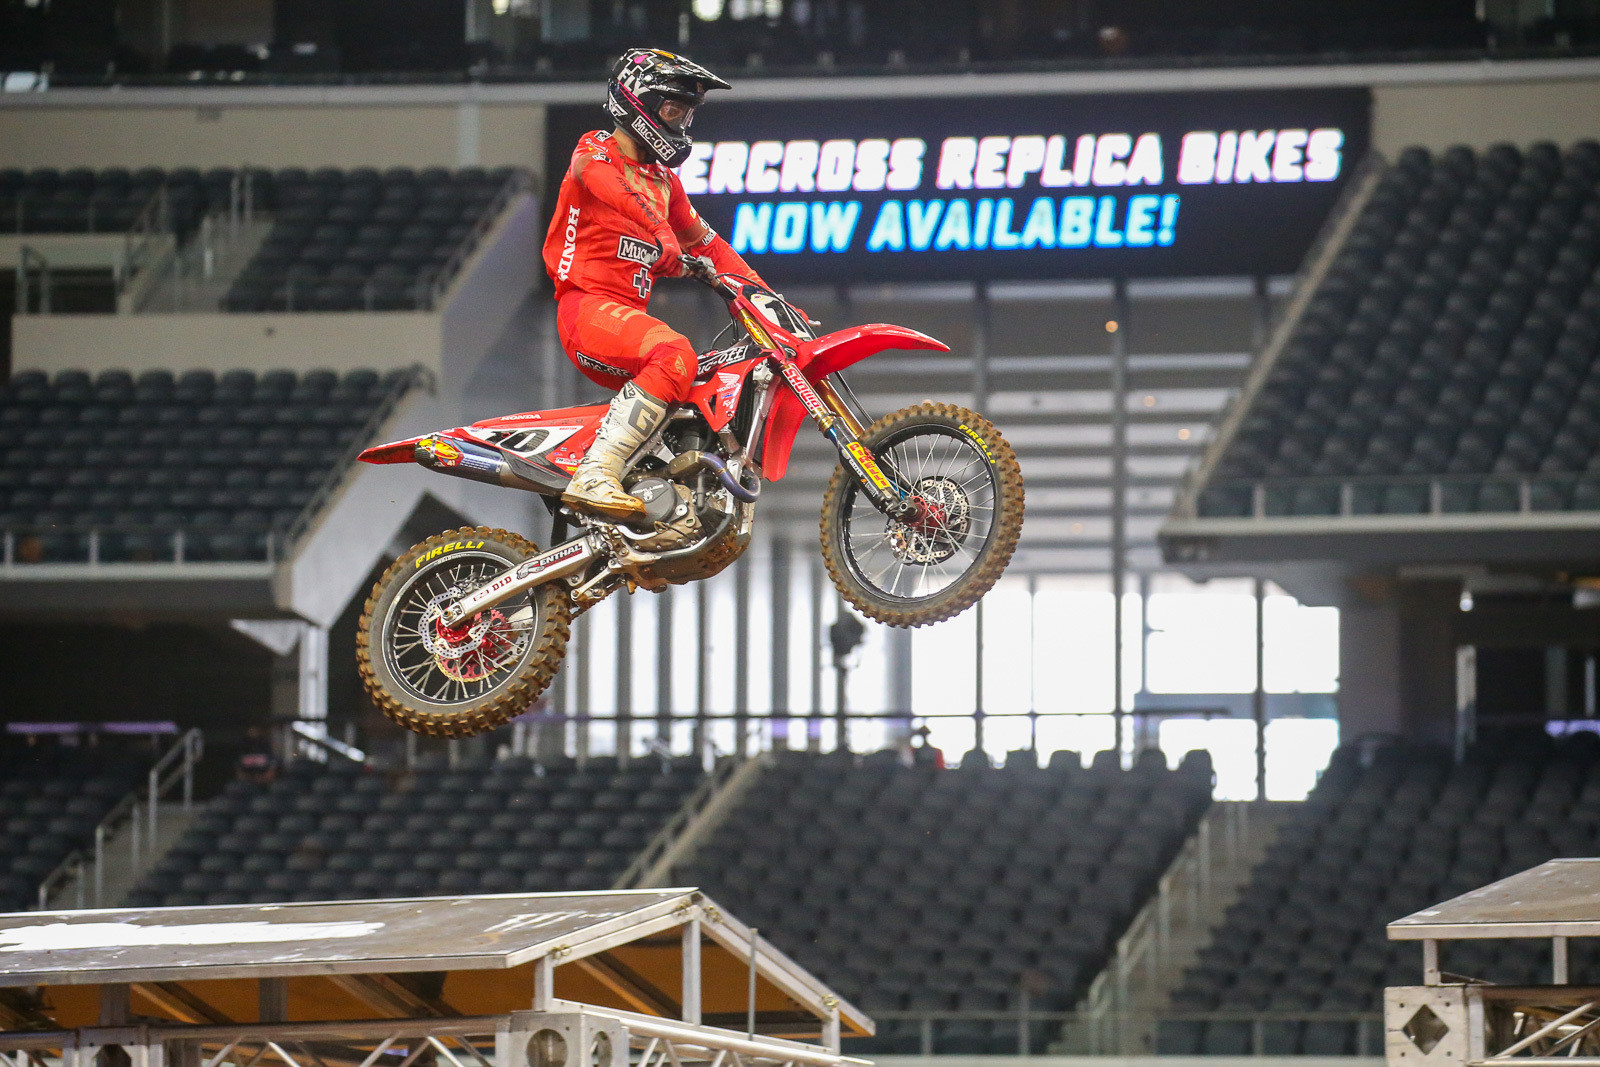 It was good to see Justin Brayton back in the mix.